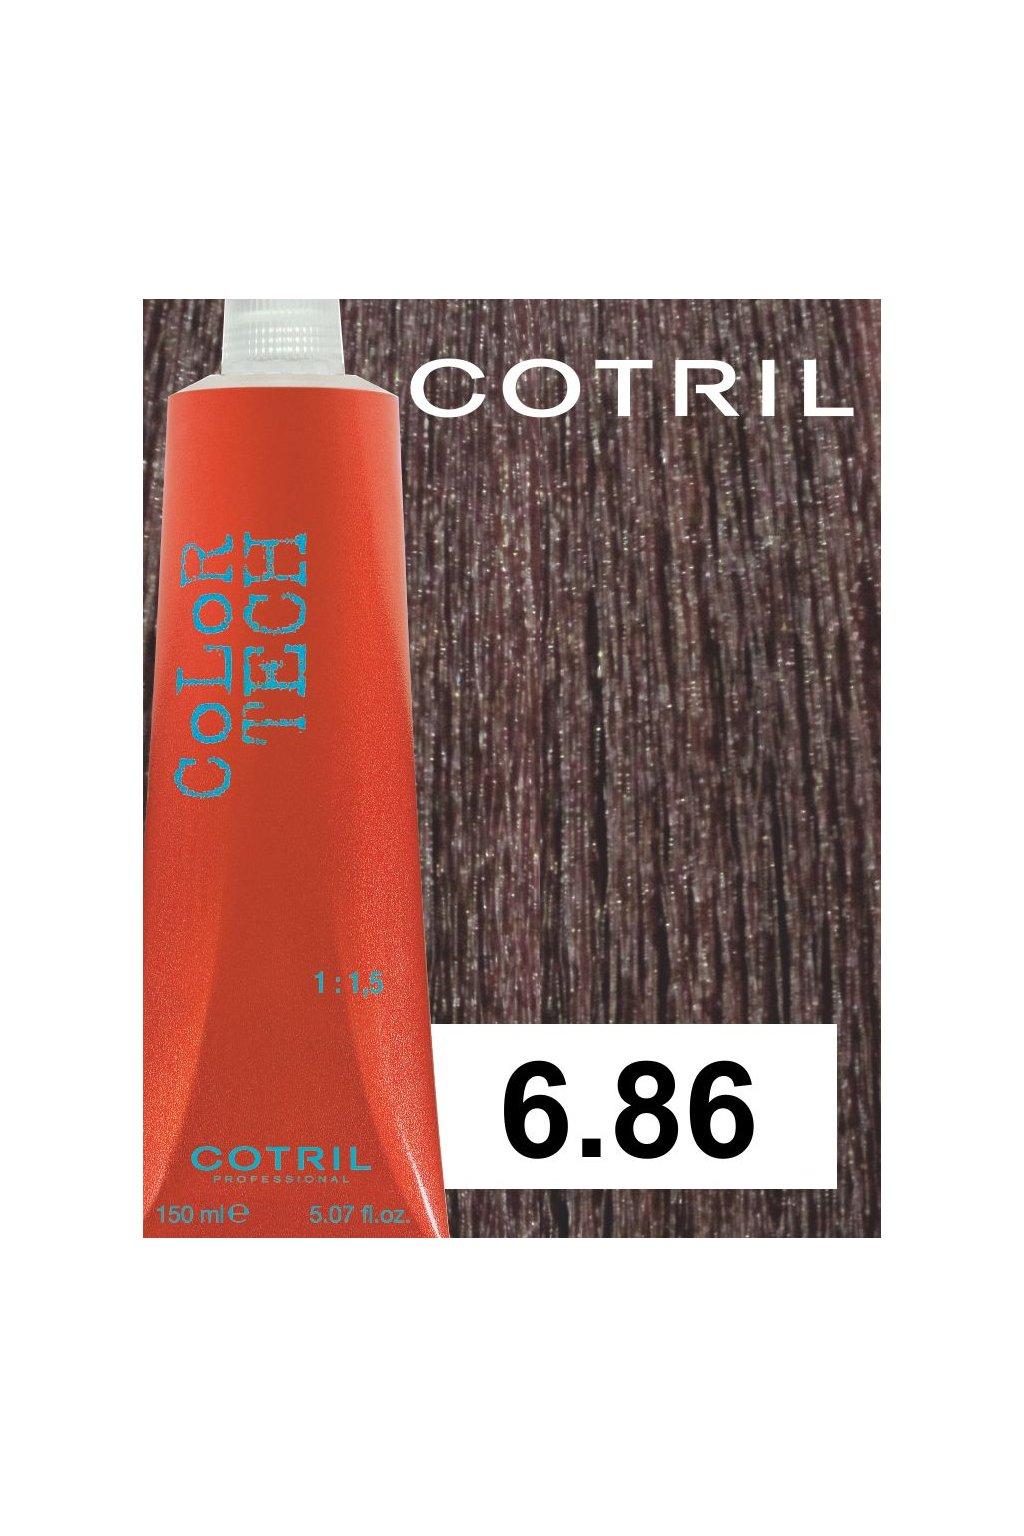 6 86 ct cotril